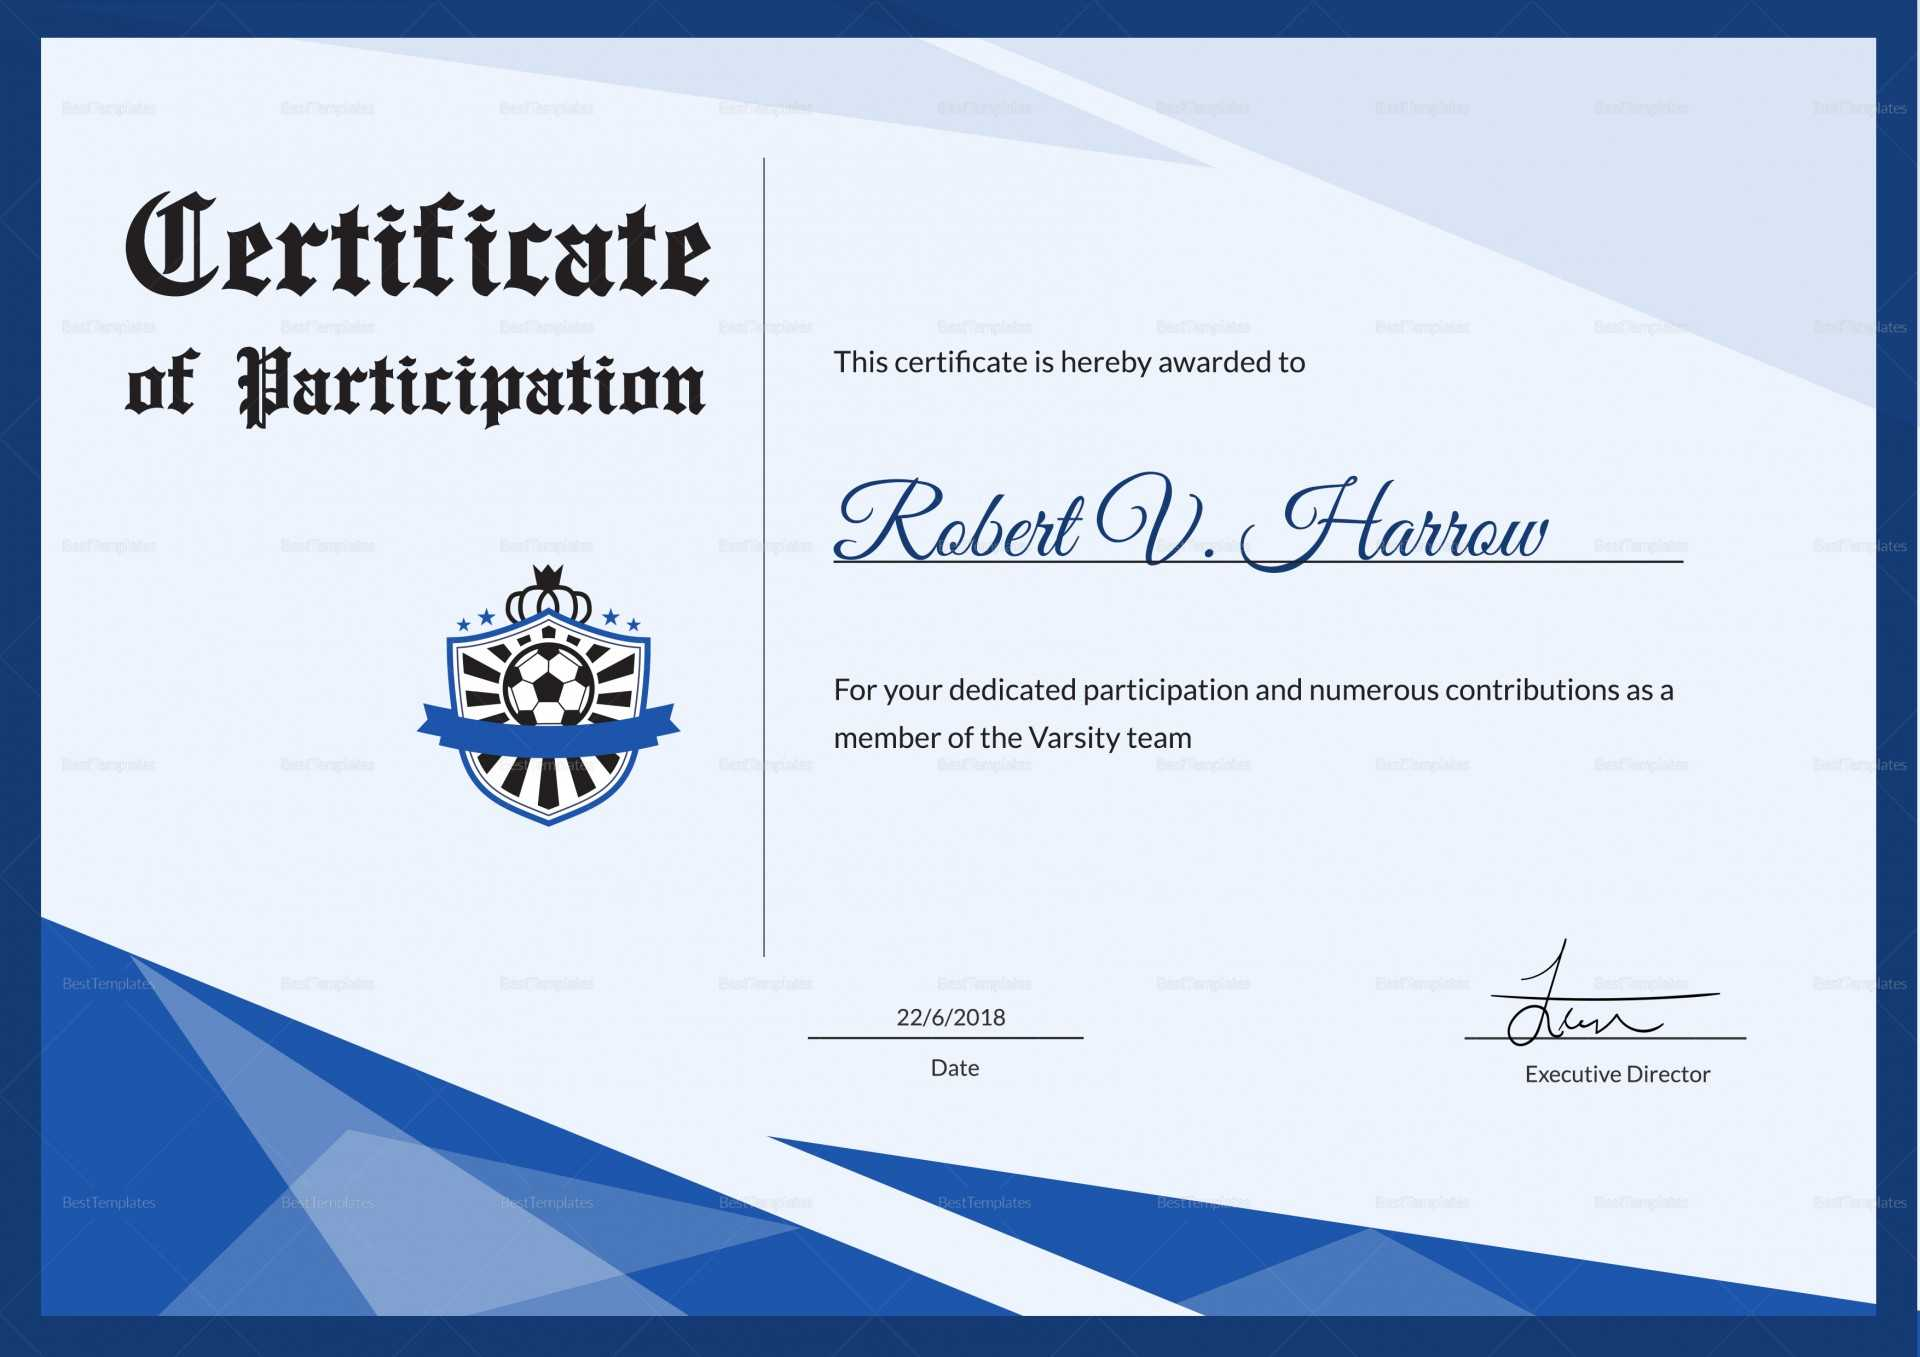 013 Sports Award Certificate Template Word Soccer With Regard To Sports Award Certificate Template Word